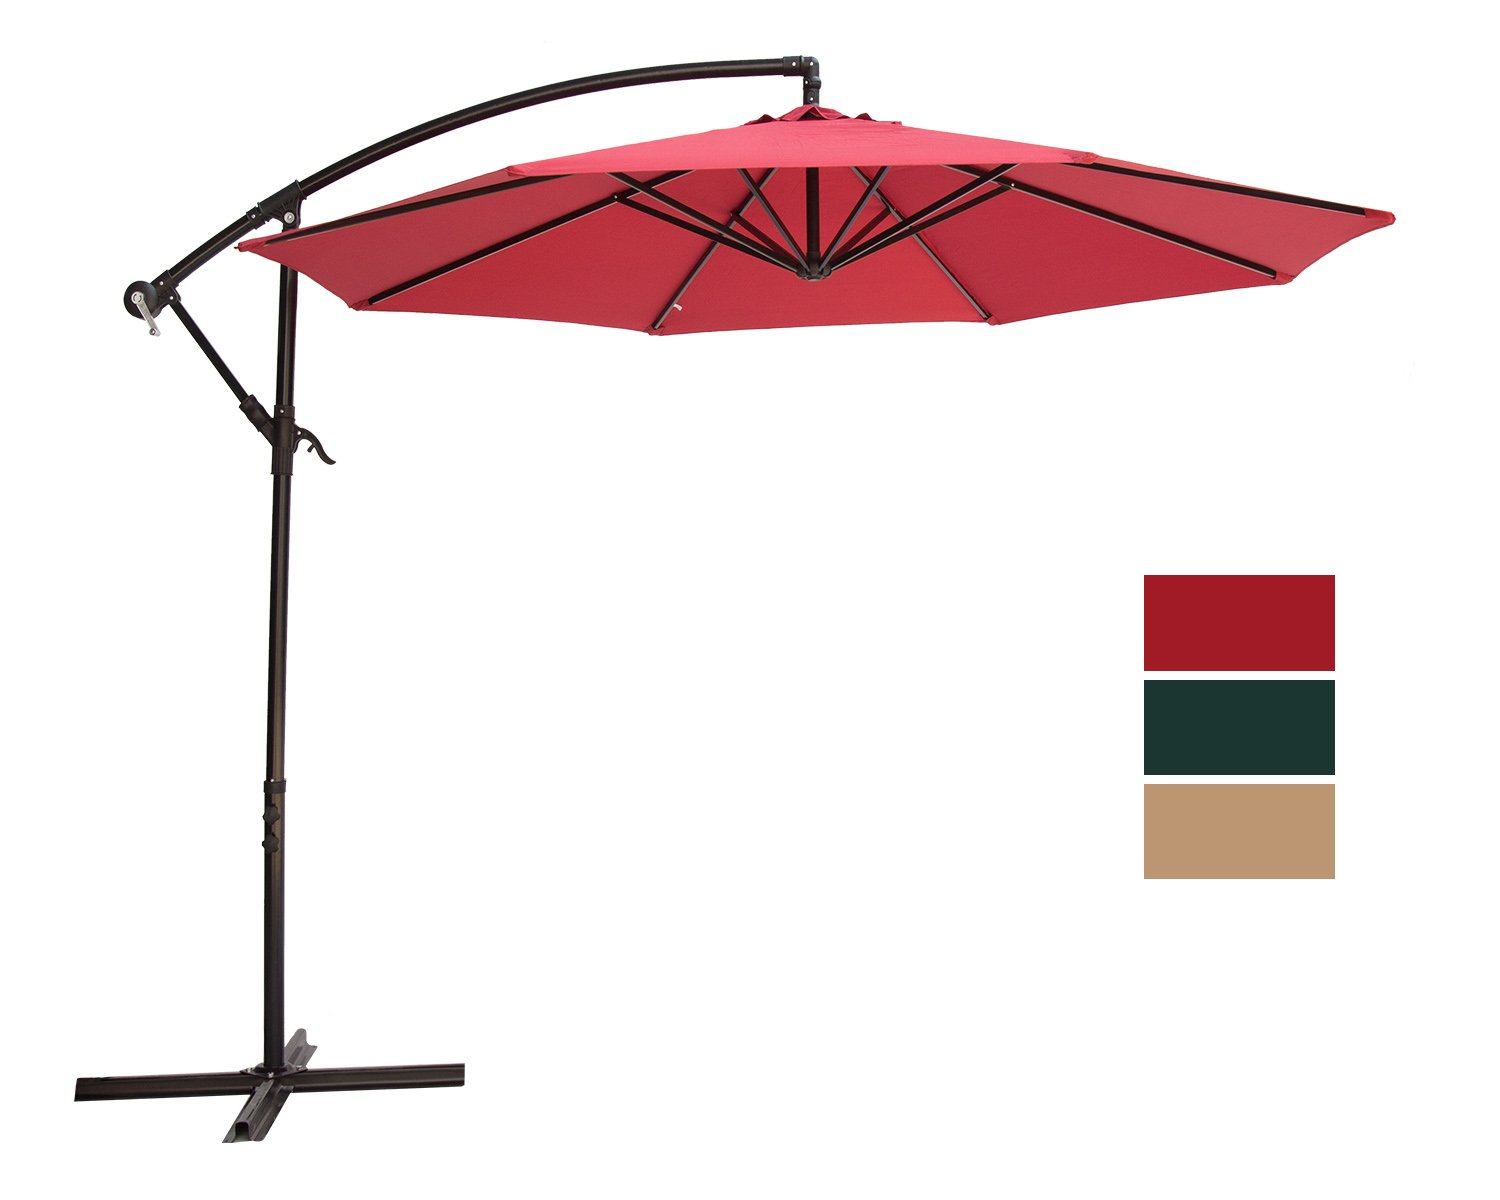 SUNNYARD 10 Ft Cantilever Patio Umbrella Outdoor Offset Hanging Umbrella, 8 Ribs, Red -  - shades-parasols, patio-furniture, patio - 61DOD4iB8qL -